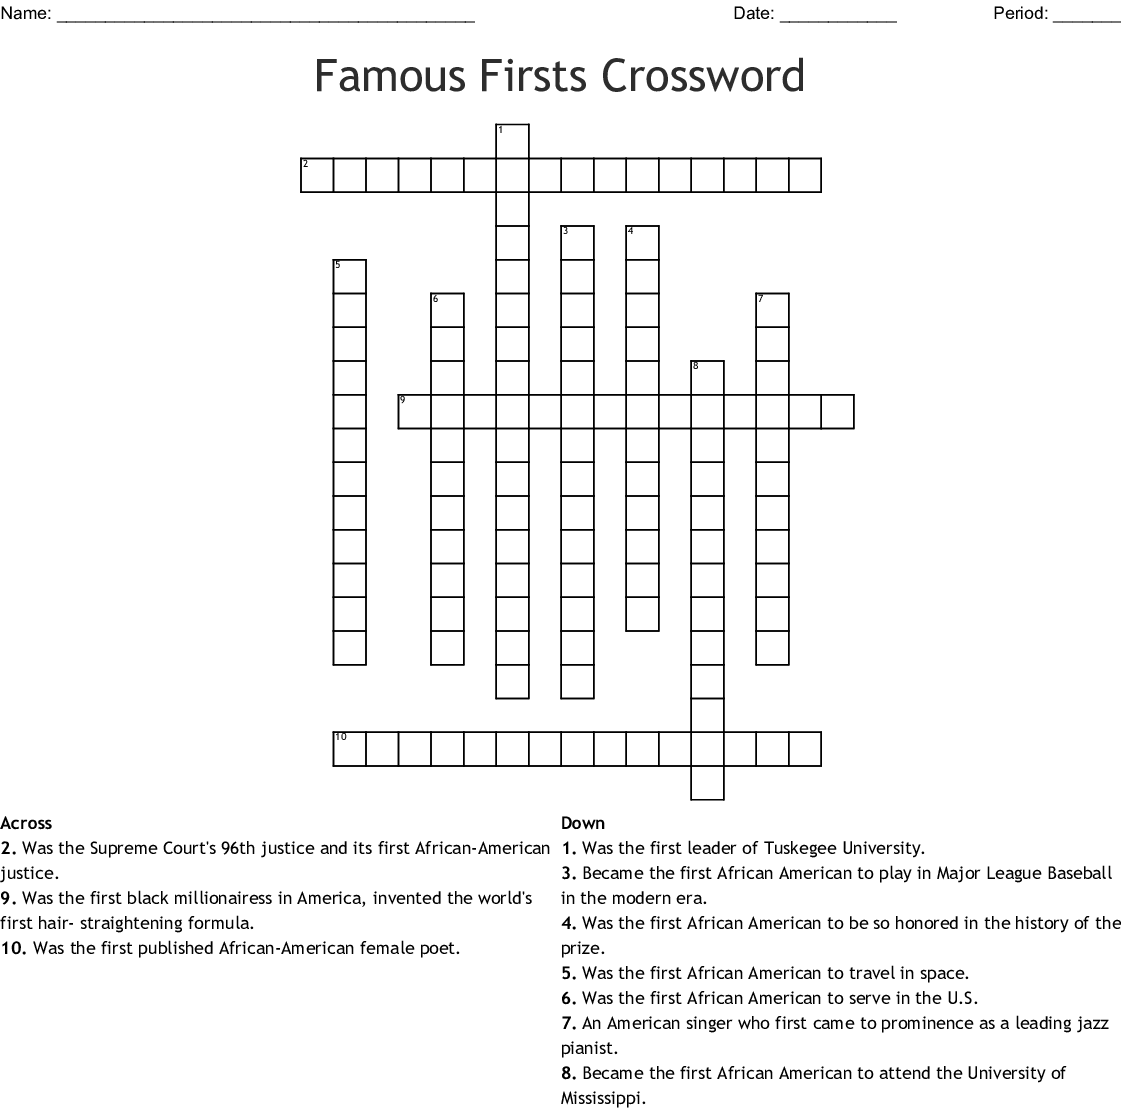 Famous Firsts Crossword